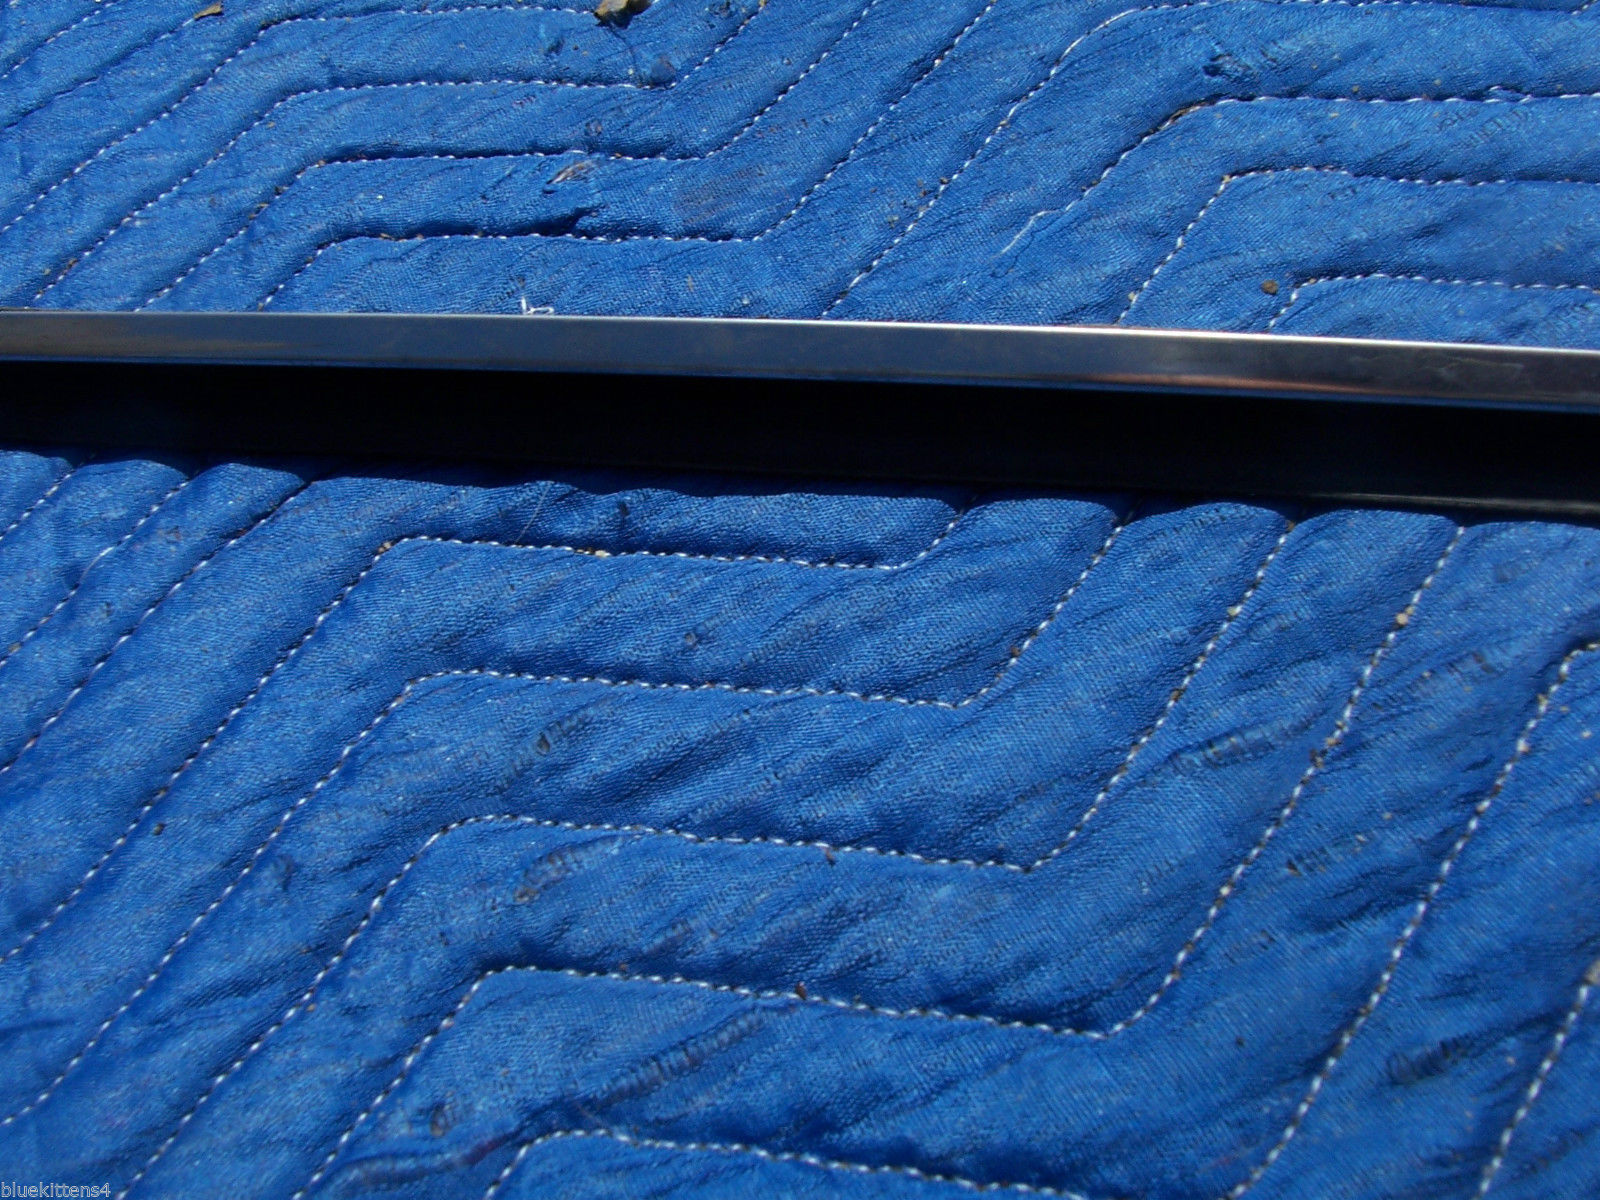 1979 COUPE DEVILLE RIGHT DOOR PANEL INSIDE WINDOW TRIM OEM USED GM CADILLAC PART image 4